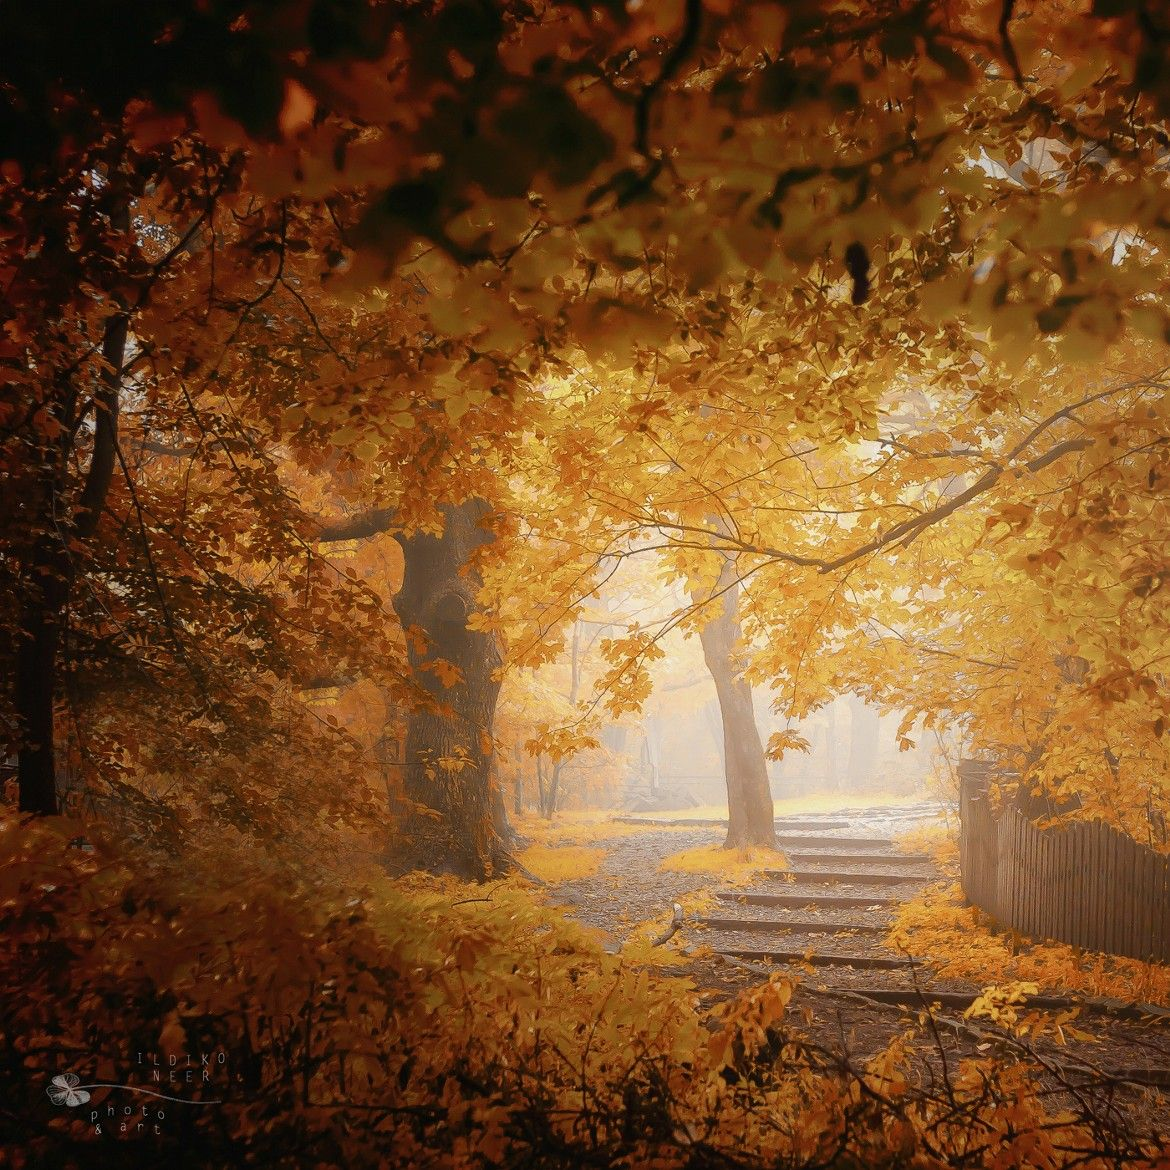 Photograph Turn to Fall by Ildiko Neer on 500px